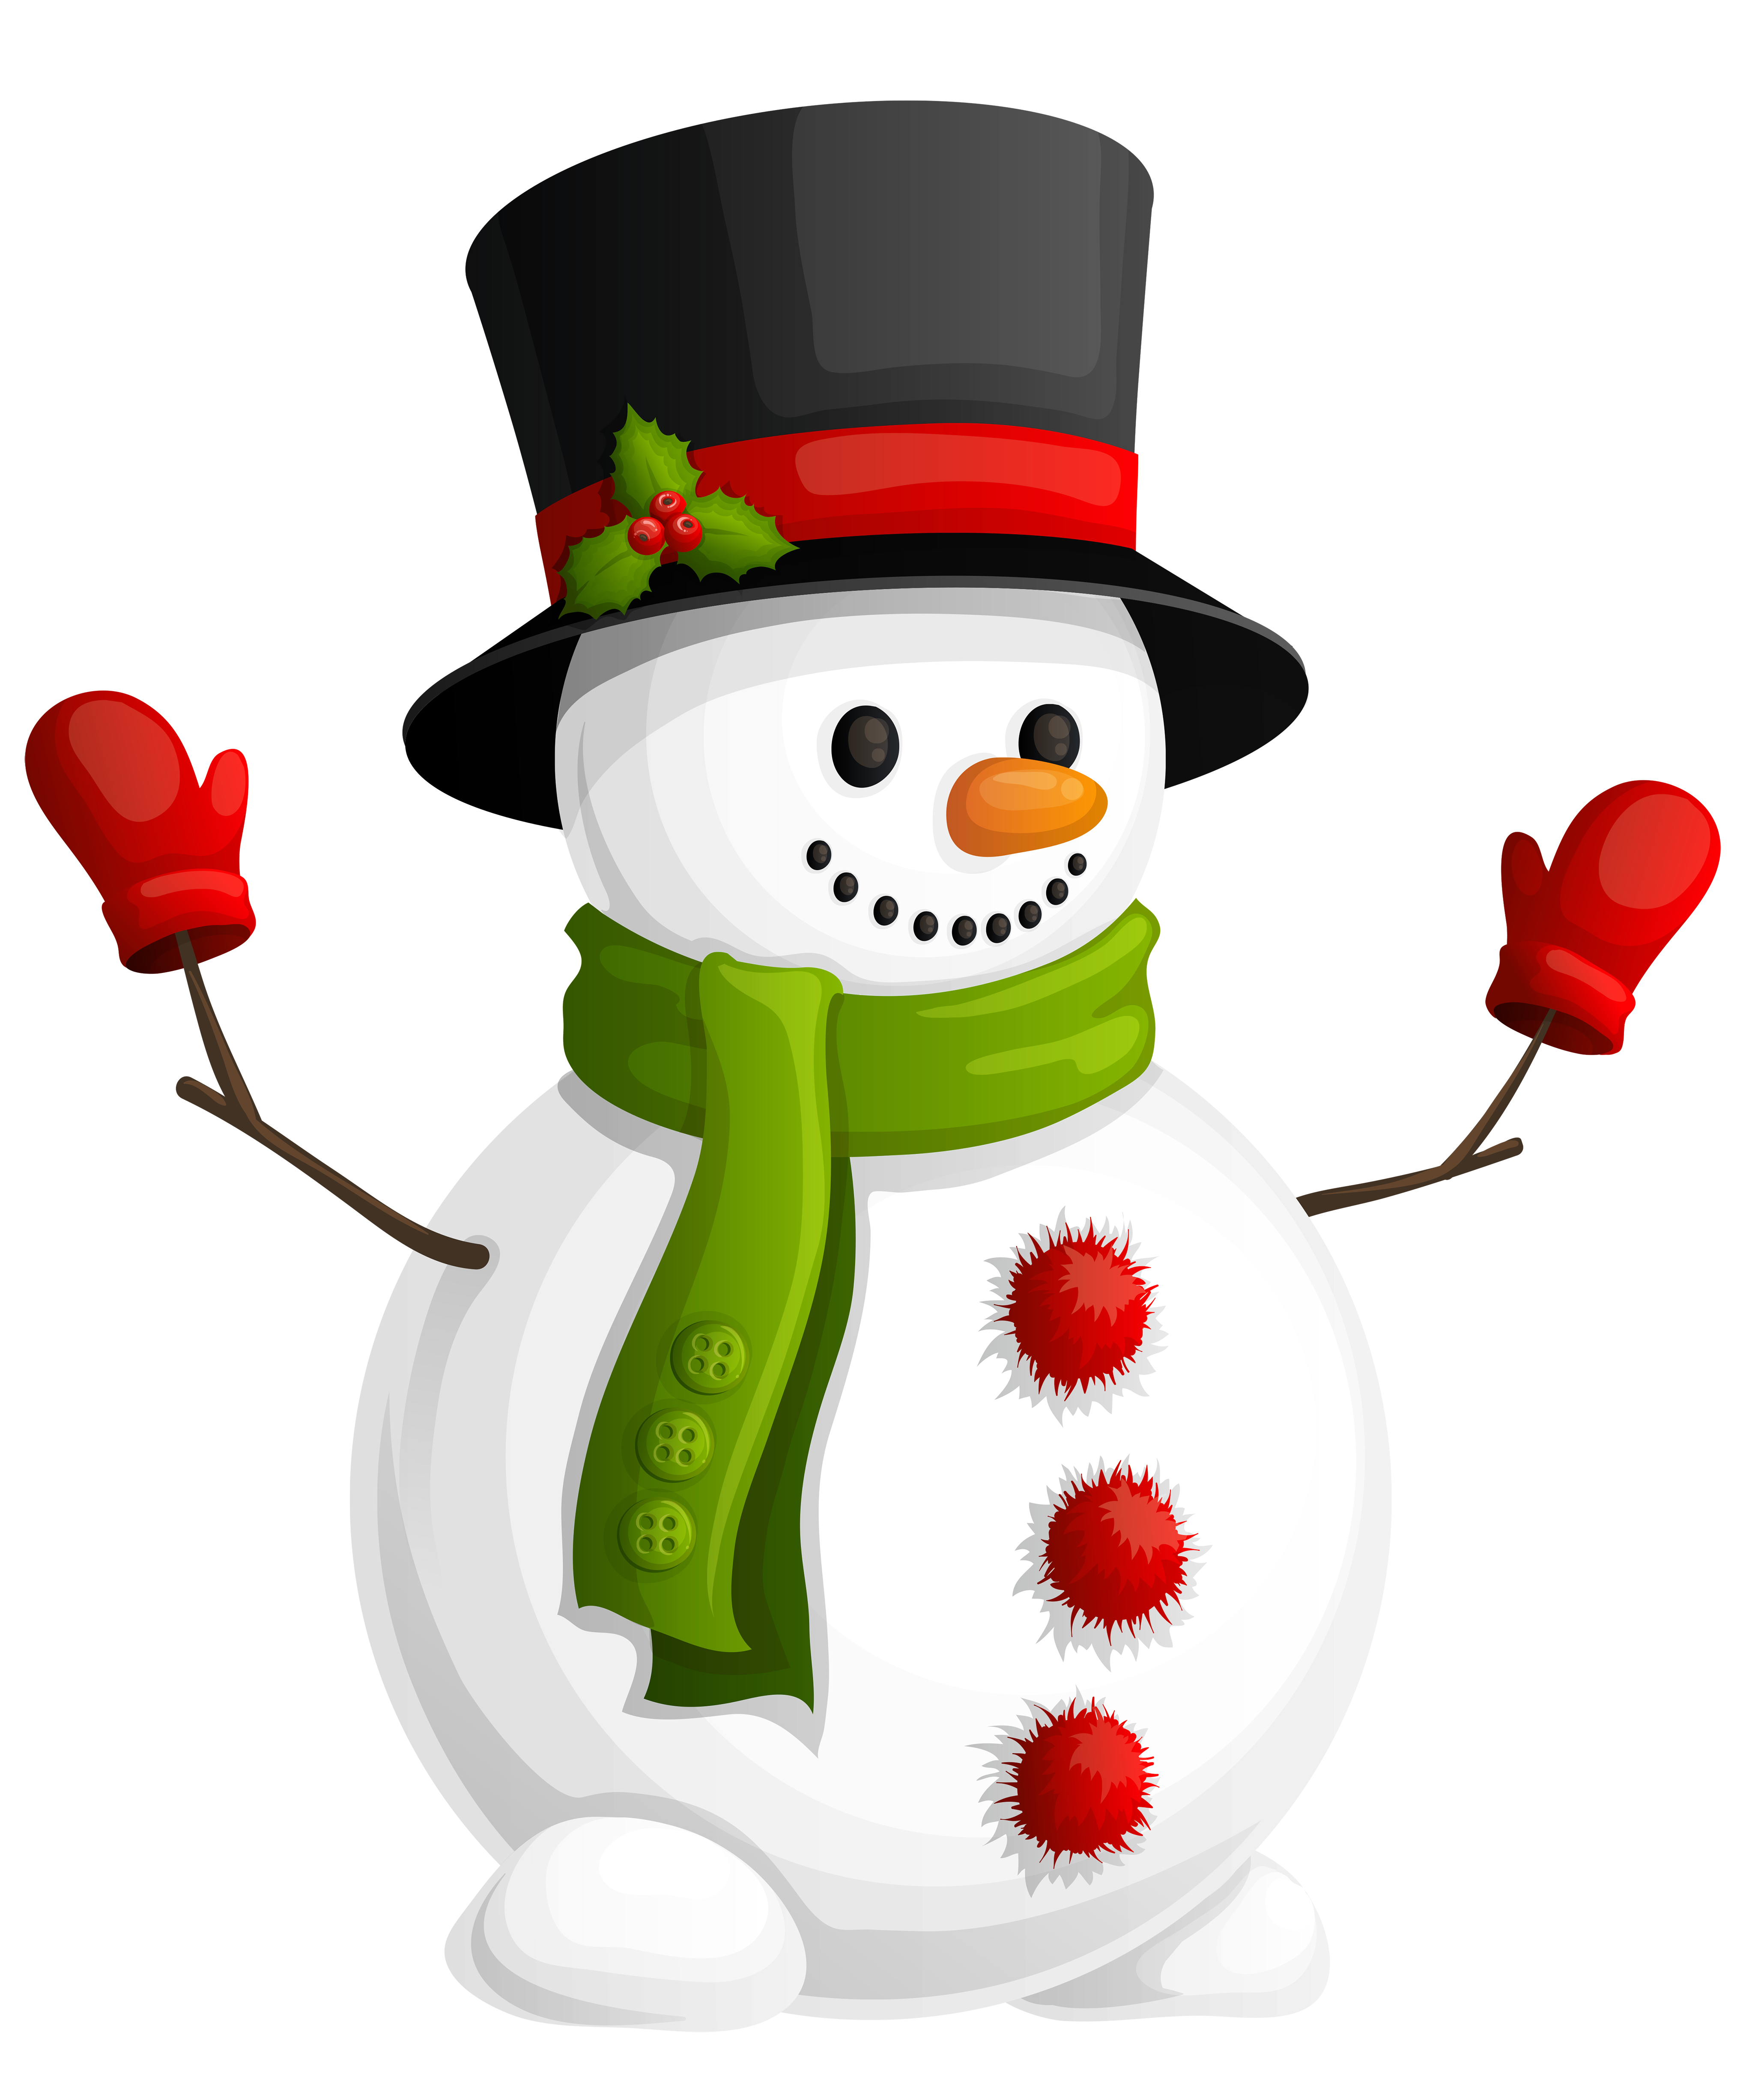 Drawing scarf christmas. Transparent snowman with green